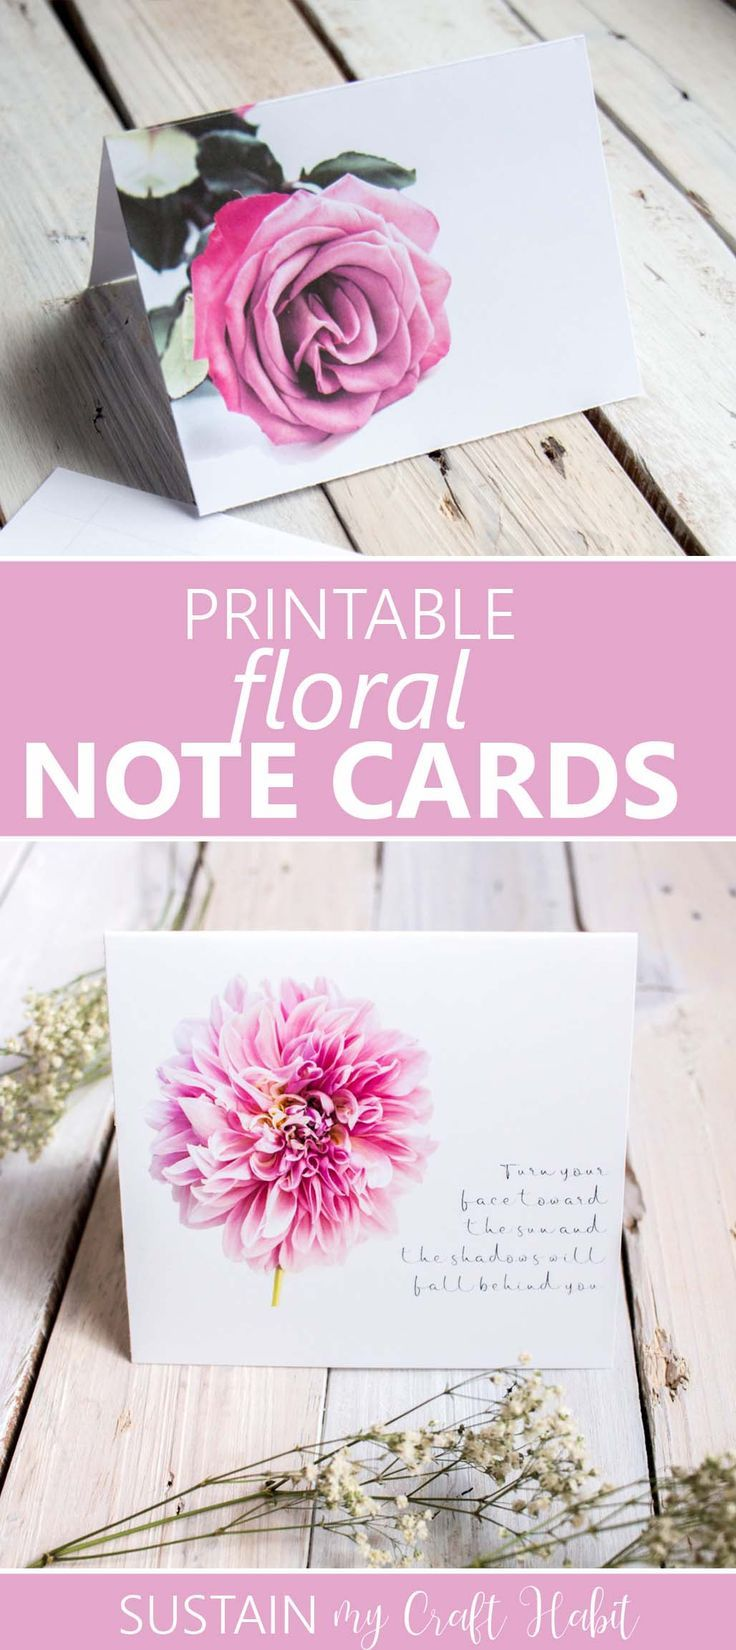 Printable Floral Note Cards Floral Note Cards Printable Note Cards Card Templates Printable